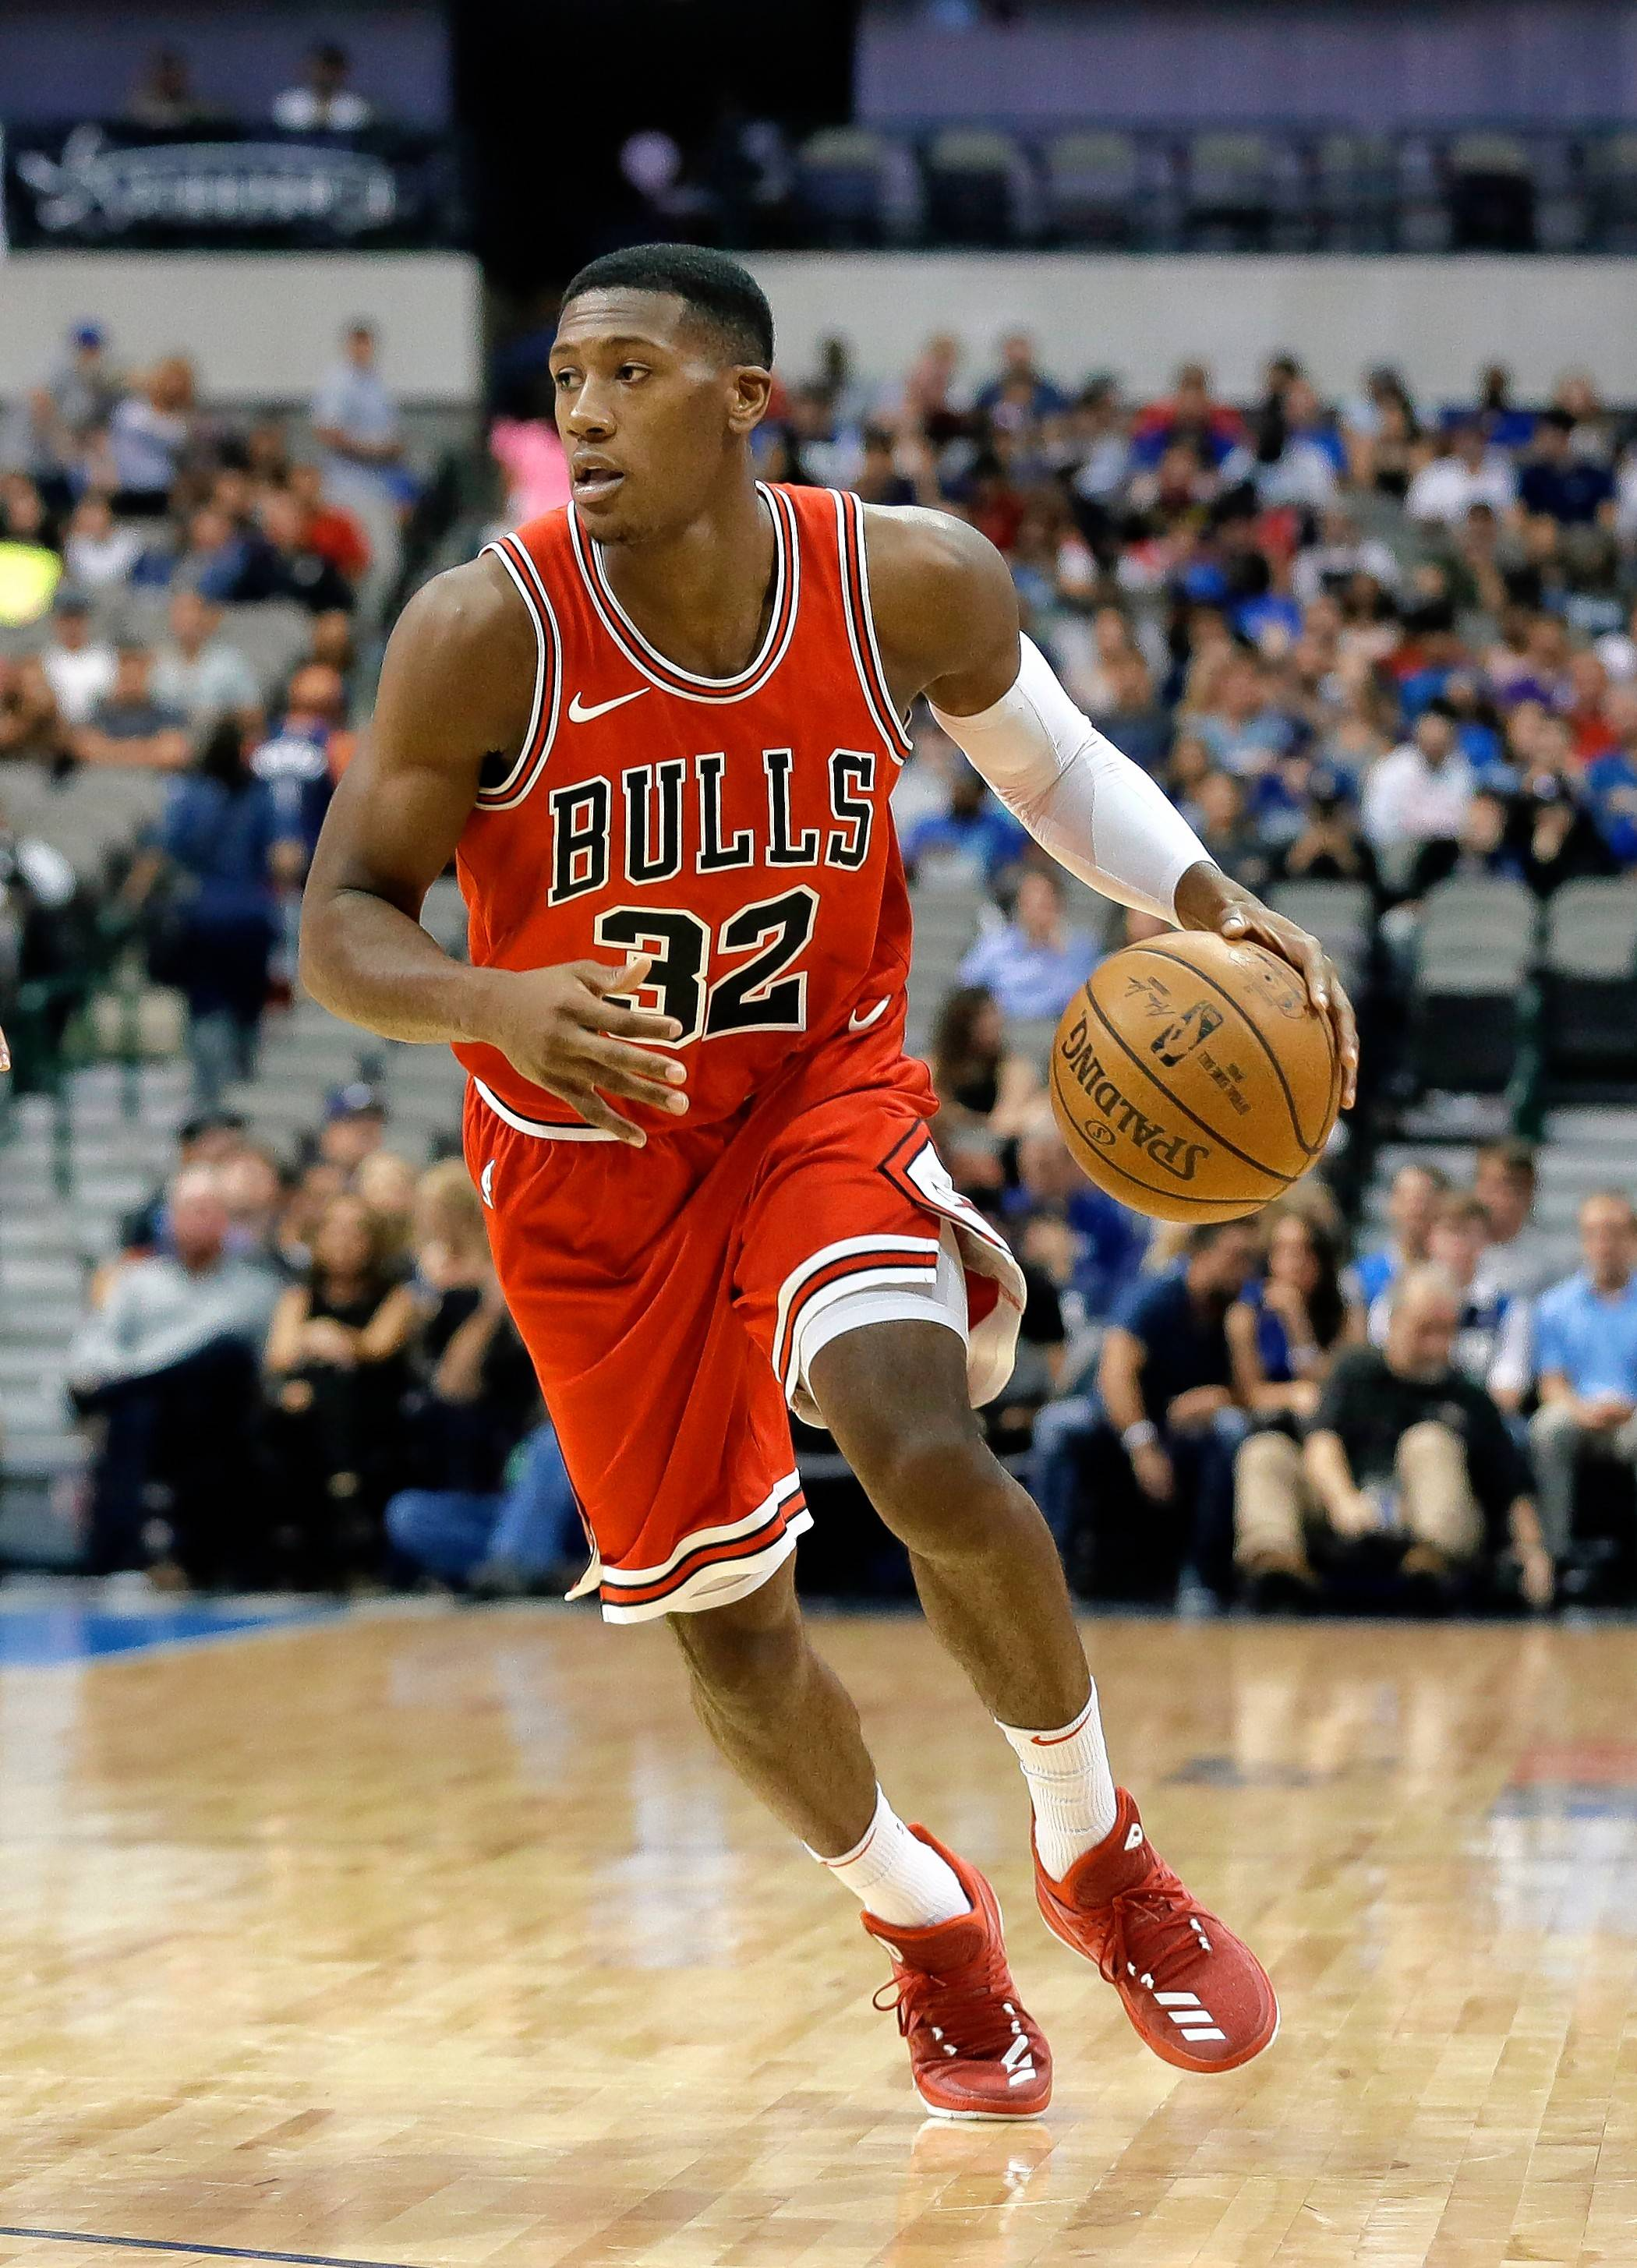 The Chicago Bulls expect Kris Dunn to become their starting point guard, but he is just returning to action after suffering a dislocated finger.